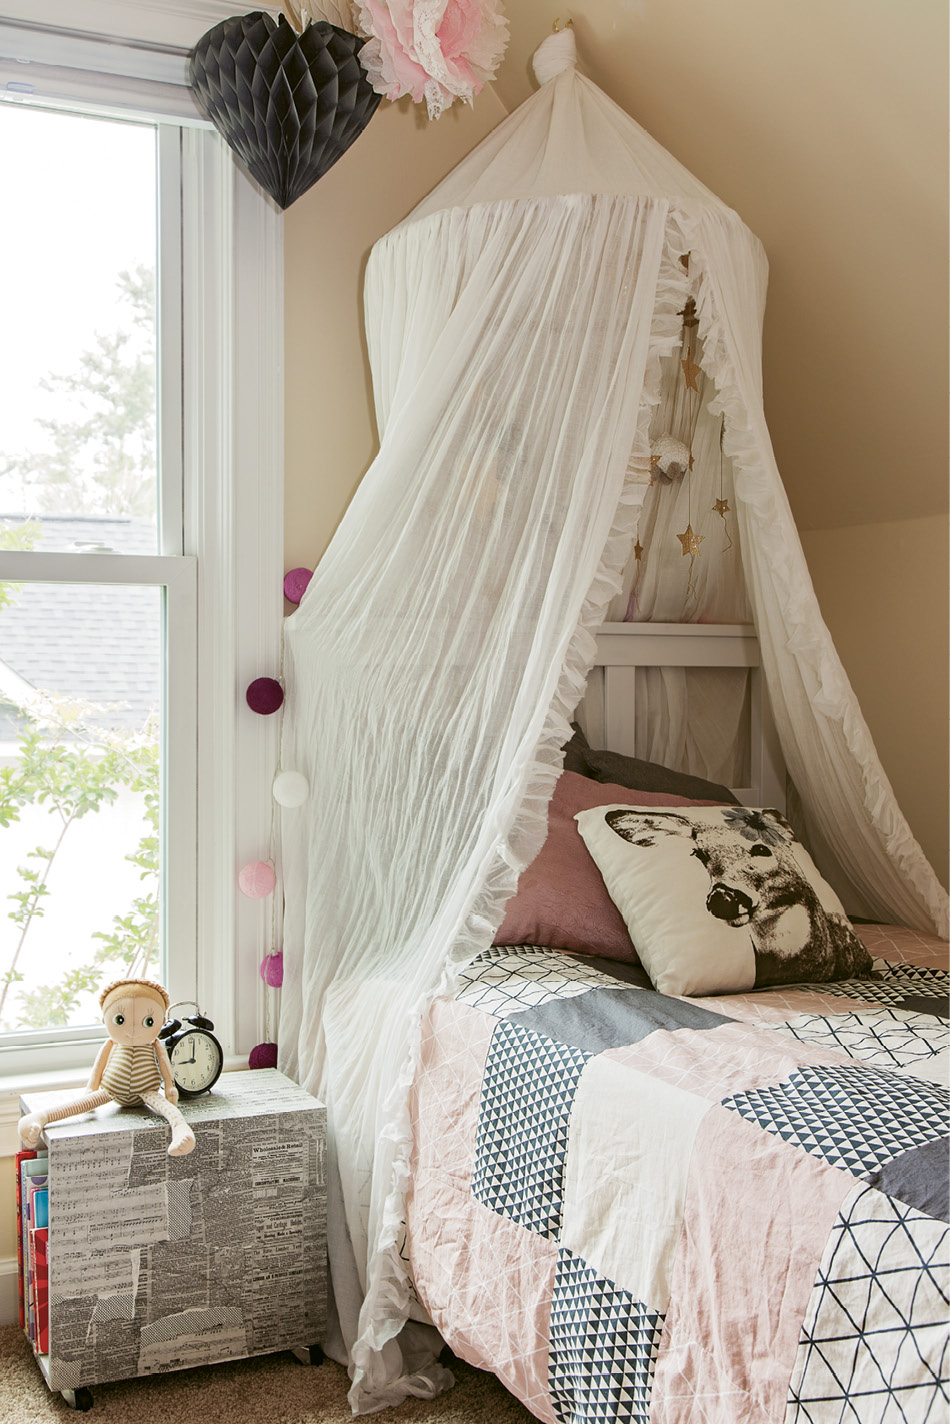 MADE BY MAMA: Therese enjoys DIY projects; her handiwork is evident in Edith's room, which boasts a rolling bookshelf she crafted from a vintage wooden crate bought at auction and patchwork bedding she designed and sewed herself.